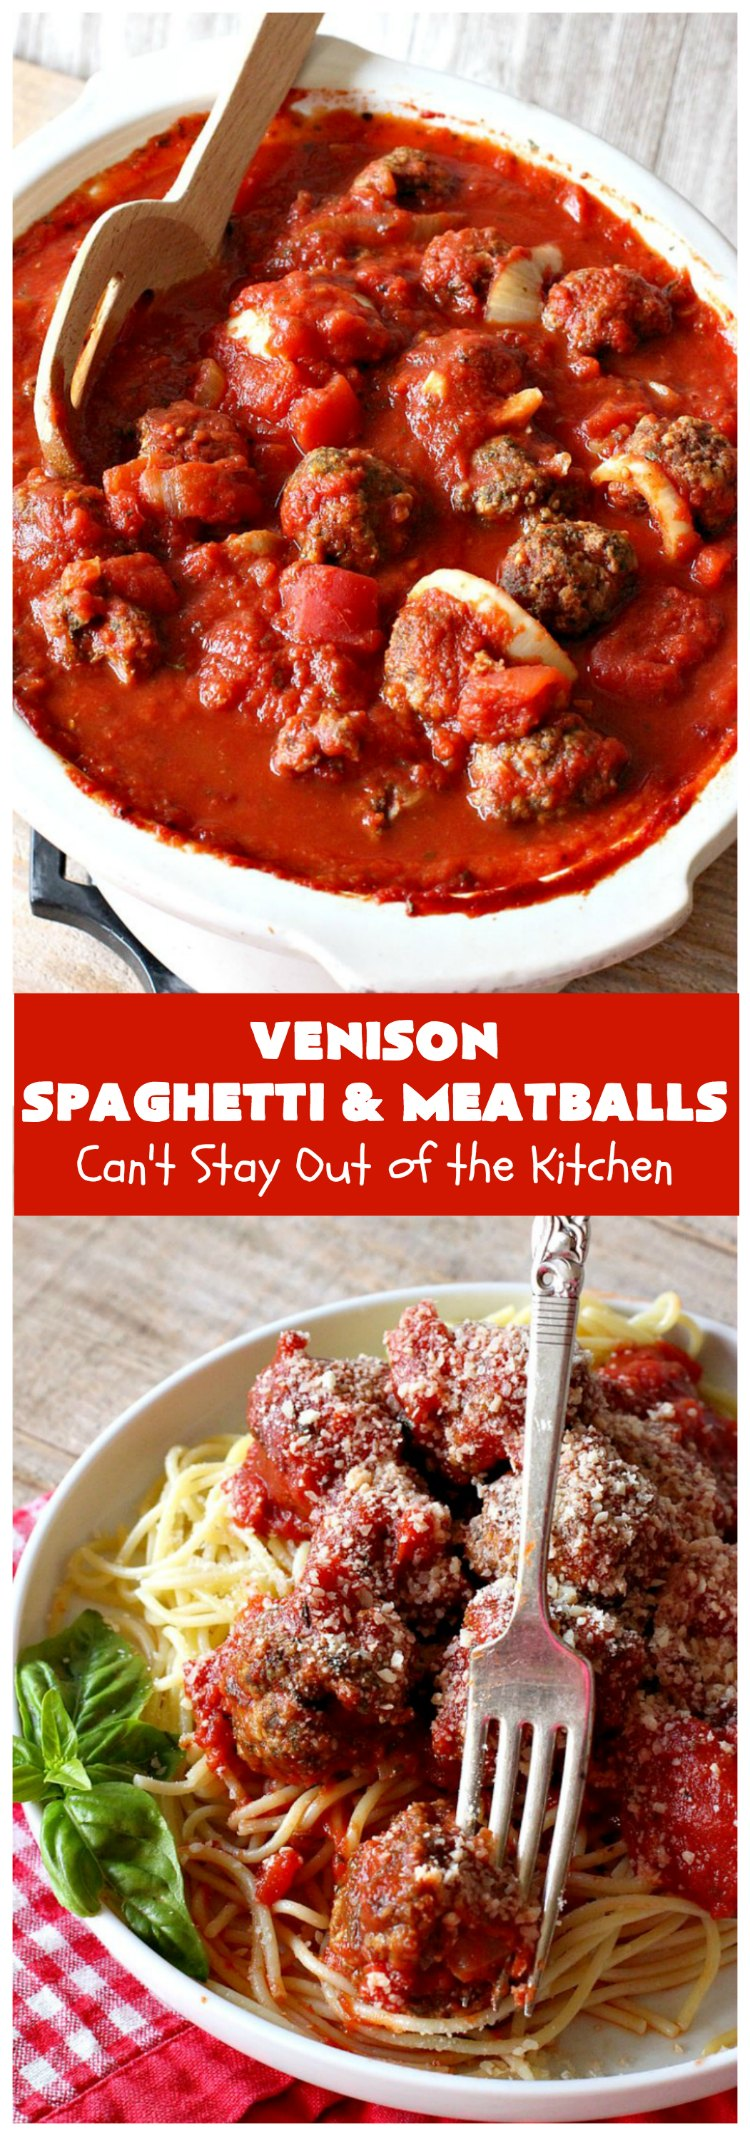 Venison Spaghetti and Meatballs   Can't Stay Out of the Kitchen   this #SpaghettiAndMeatballs version can't be beat! It takes the best of #spaghetti & #meatballs but uses #venison instead. No one will ever believe you're using #DeerMeat instead of #beef! This #LowCalorie entree will knock your socks off! #Italian #pasta #VenisonSpaghettiAndMeatballsVenison Spaghetti and Meatballs   Can't Stay Out of the Kitchen   this #SpaghettiAndMeatballs version can't be beat! It takes the best of #spaghetti & #meatballs but uses #venison instead. No one will ever believe you're using #DeerMeat instead of #beef! This #LowCalorie entree will knock your socks off! #Italian #pasta #VenisonSpaghettiAndMeatballs